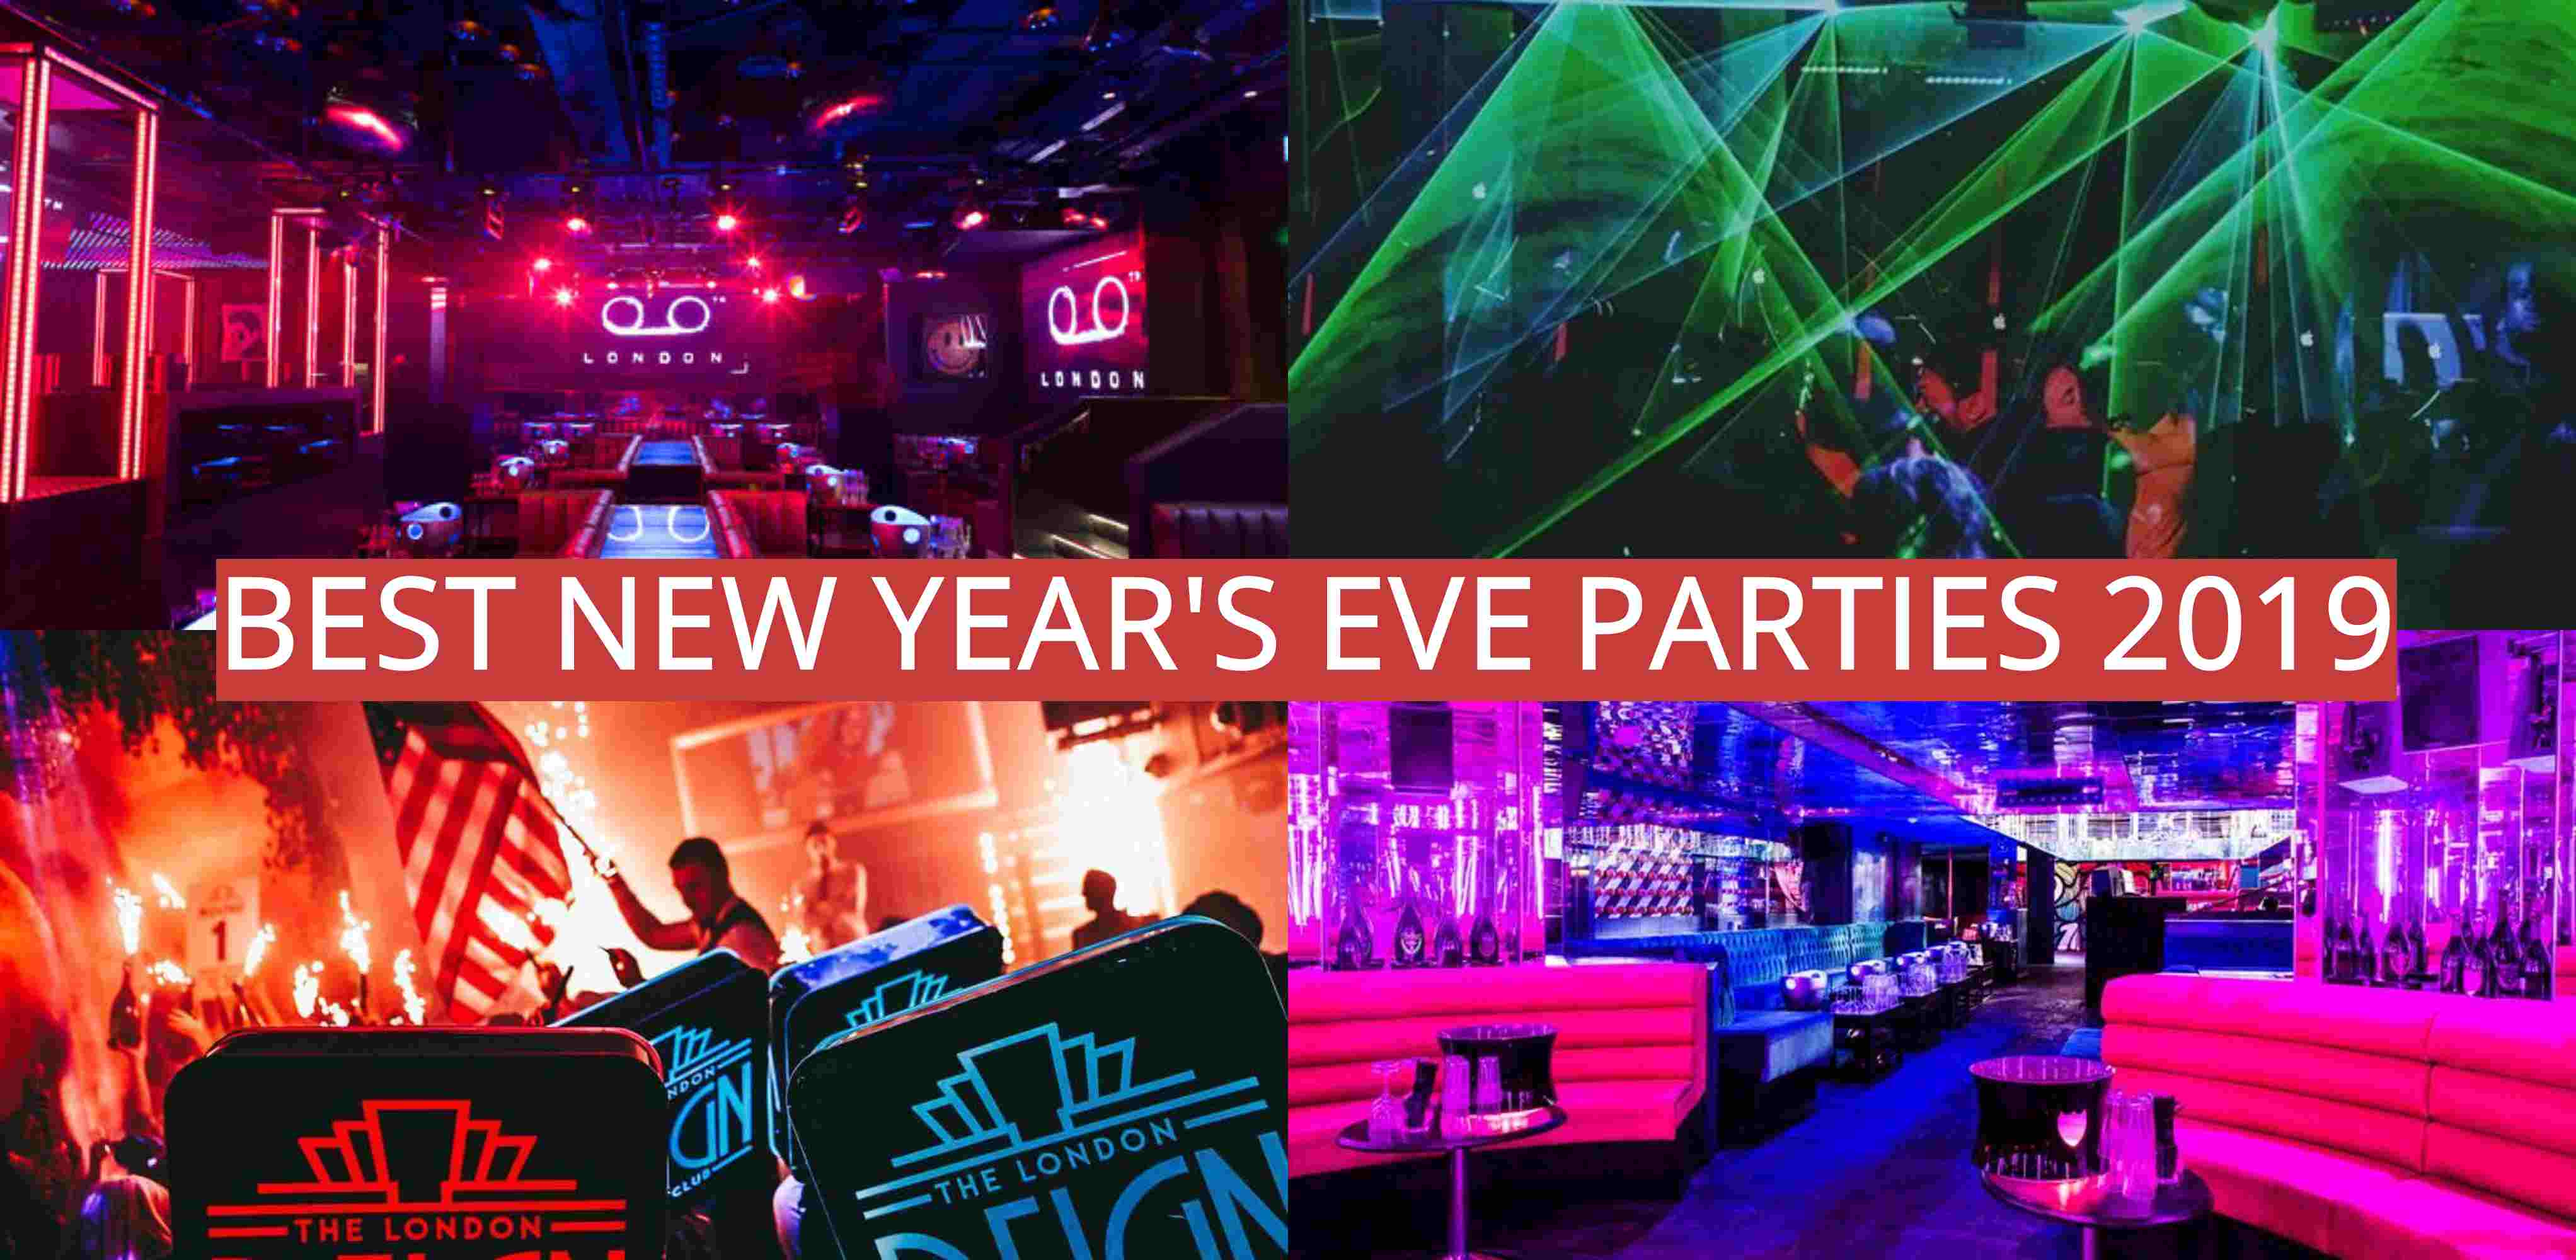 Best New Year's Eve Parties 2019 Nightclubs London